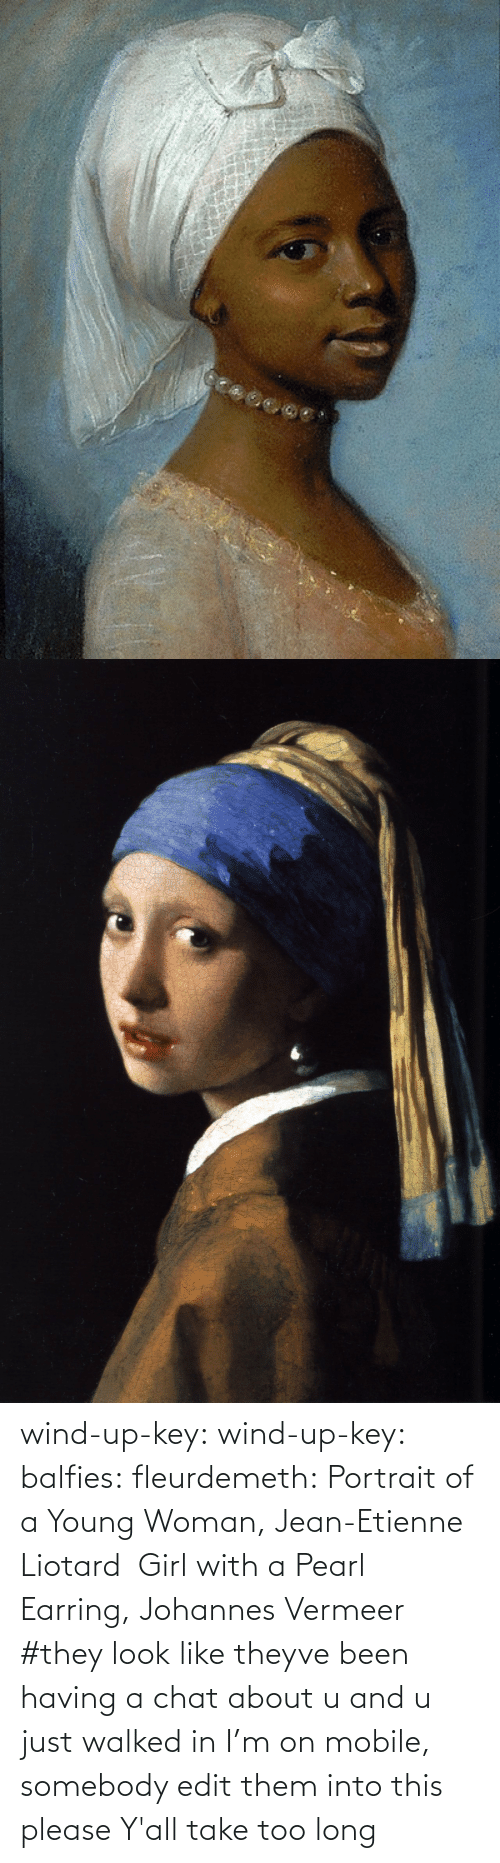 pearl: wind-up-key: wind-up-key:   balfies:  fleurdemeth:  Portrait of a Young Woman, Jean-Etienne Liotard  Girl with a Pearl Earring, Johannes Vermeer   #they look like theyve been having a chat about u and u just walked in   I'm on mobile, somebody edit them into this please   Y'all take too long